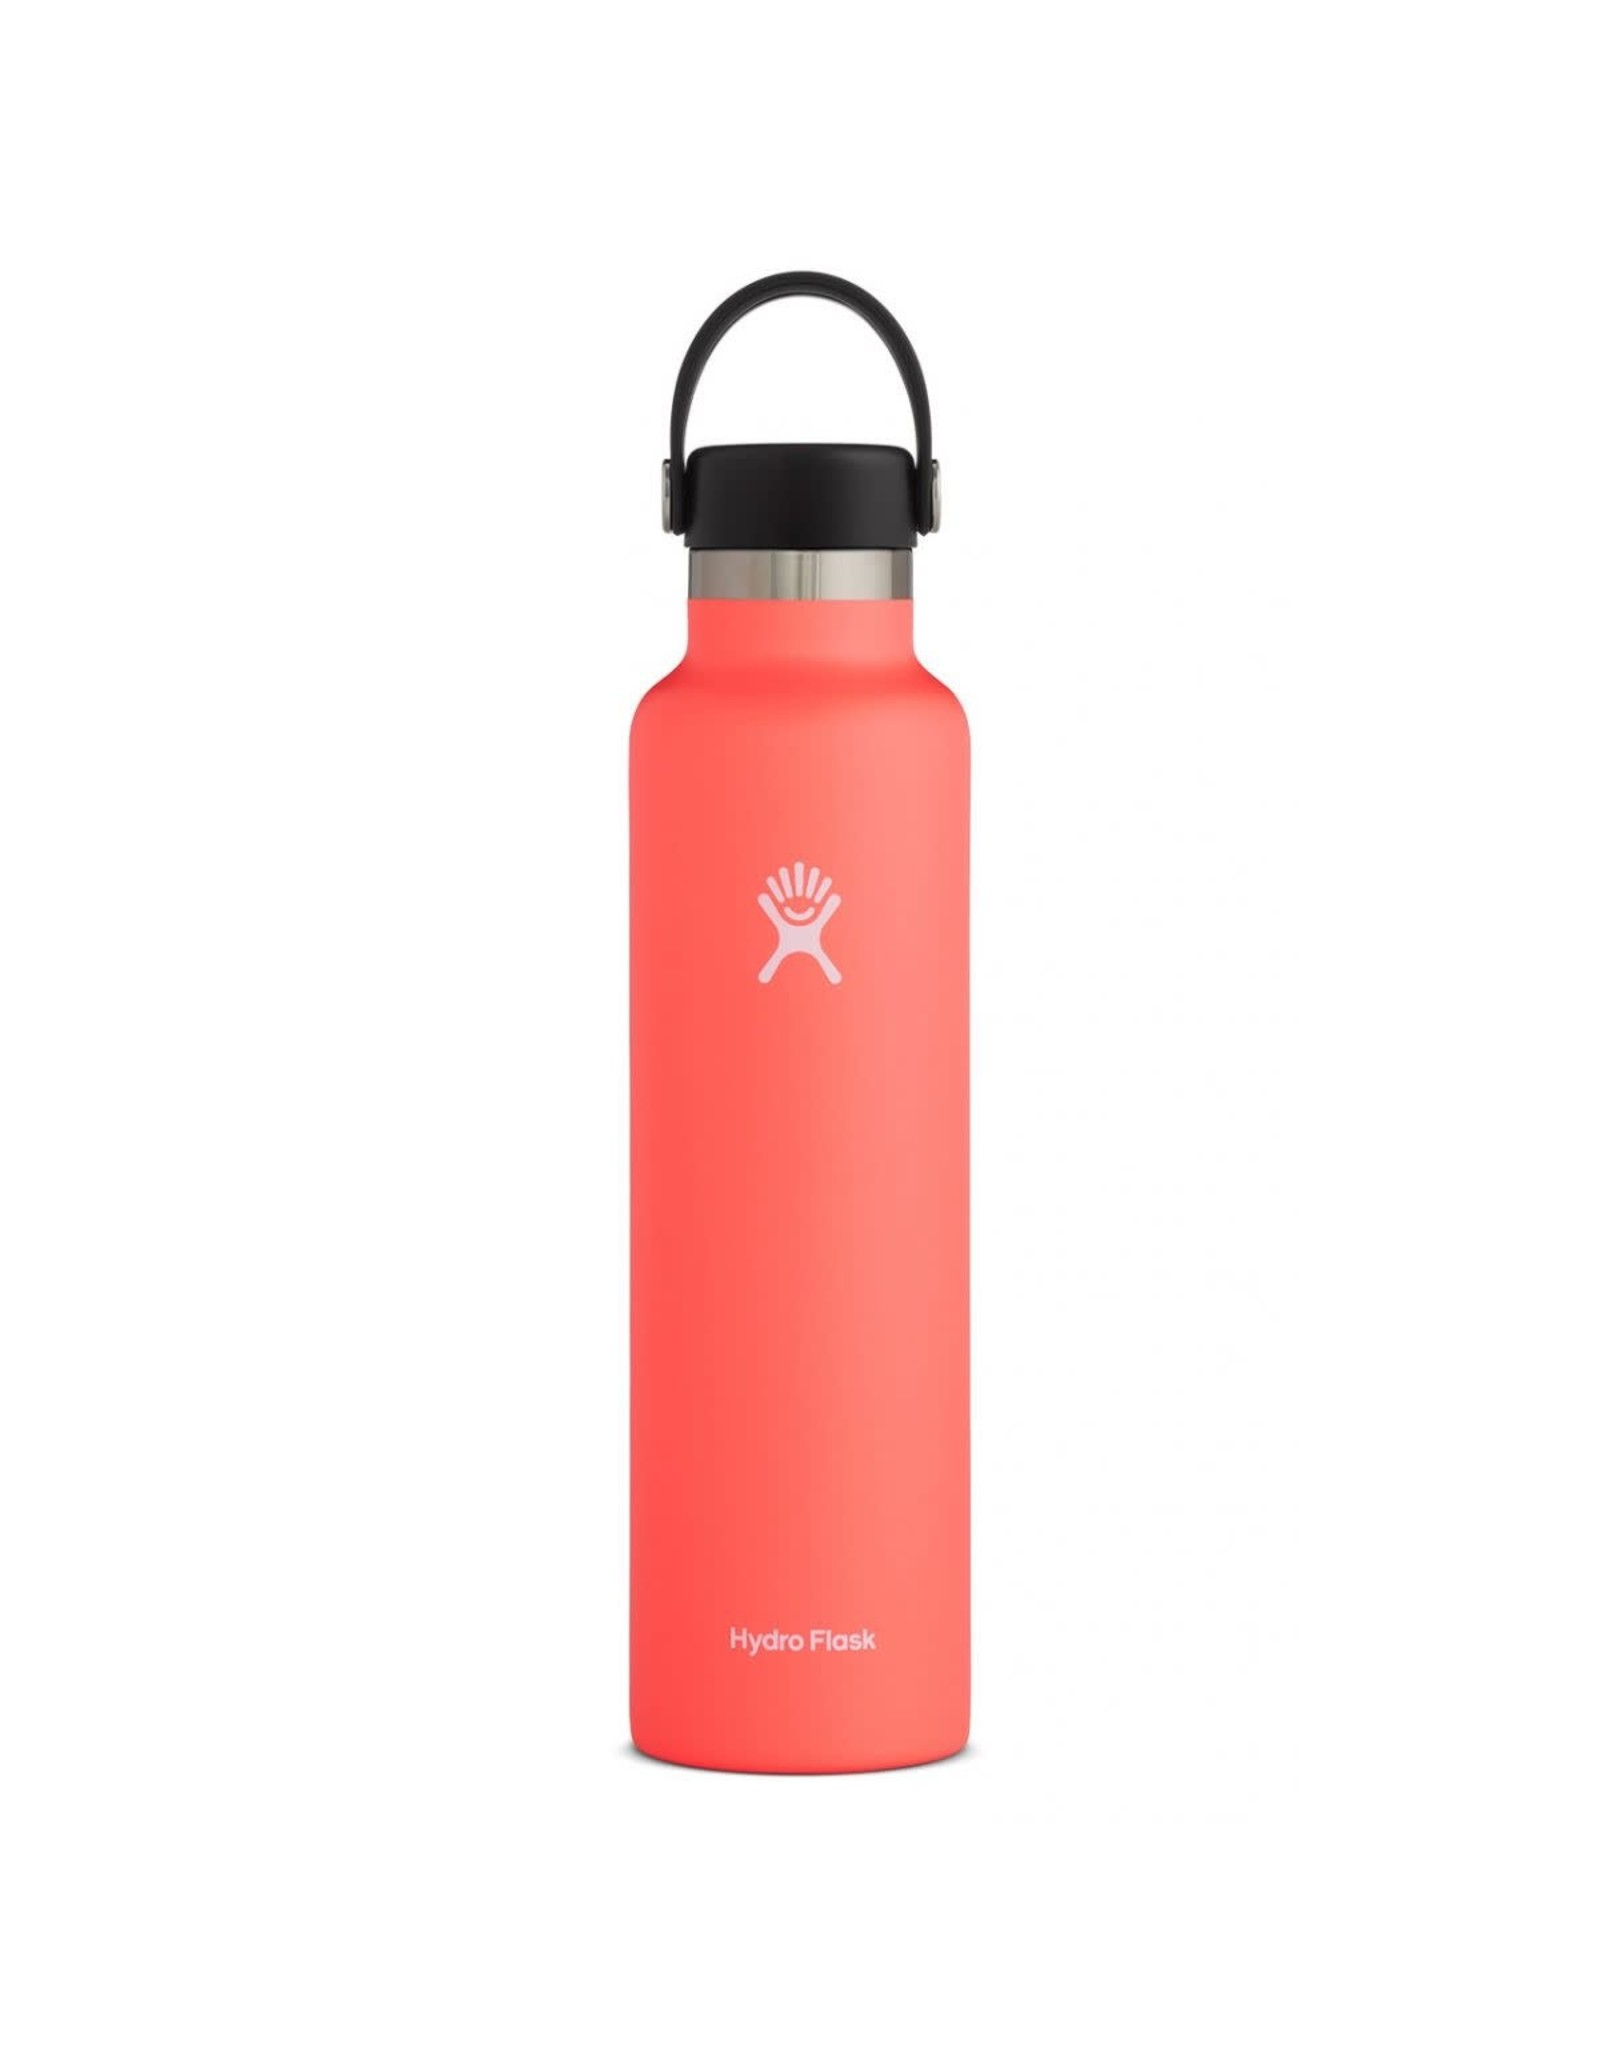 Hydro Flask Hydro Flask 24oz Standard Mouth with Flex Cap Hibiscus